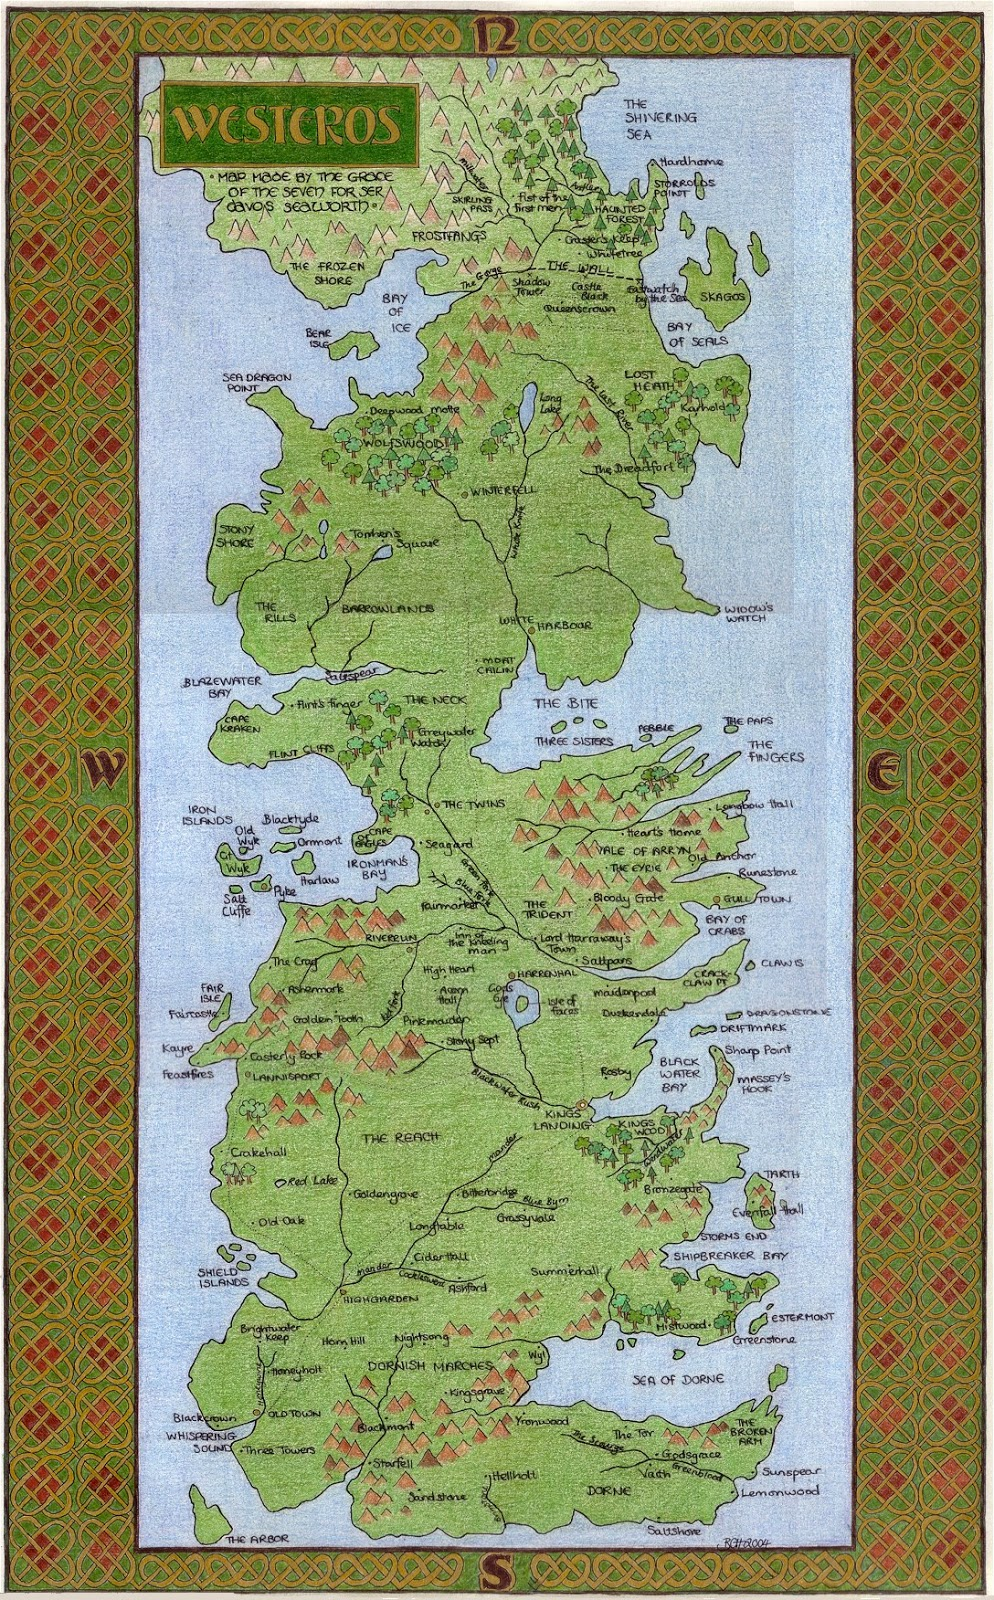 game of thrones world map pdf with More Maps Of Westeros on Free large westeros map in addition Map Illustrations By Michael Gellatly additionally Westeros Map El Mapa De Juego De Tronos En Tu Movil moreover The Game Of Risk Life Applications also Game Of Thrones 101 Casterly Rock.